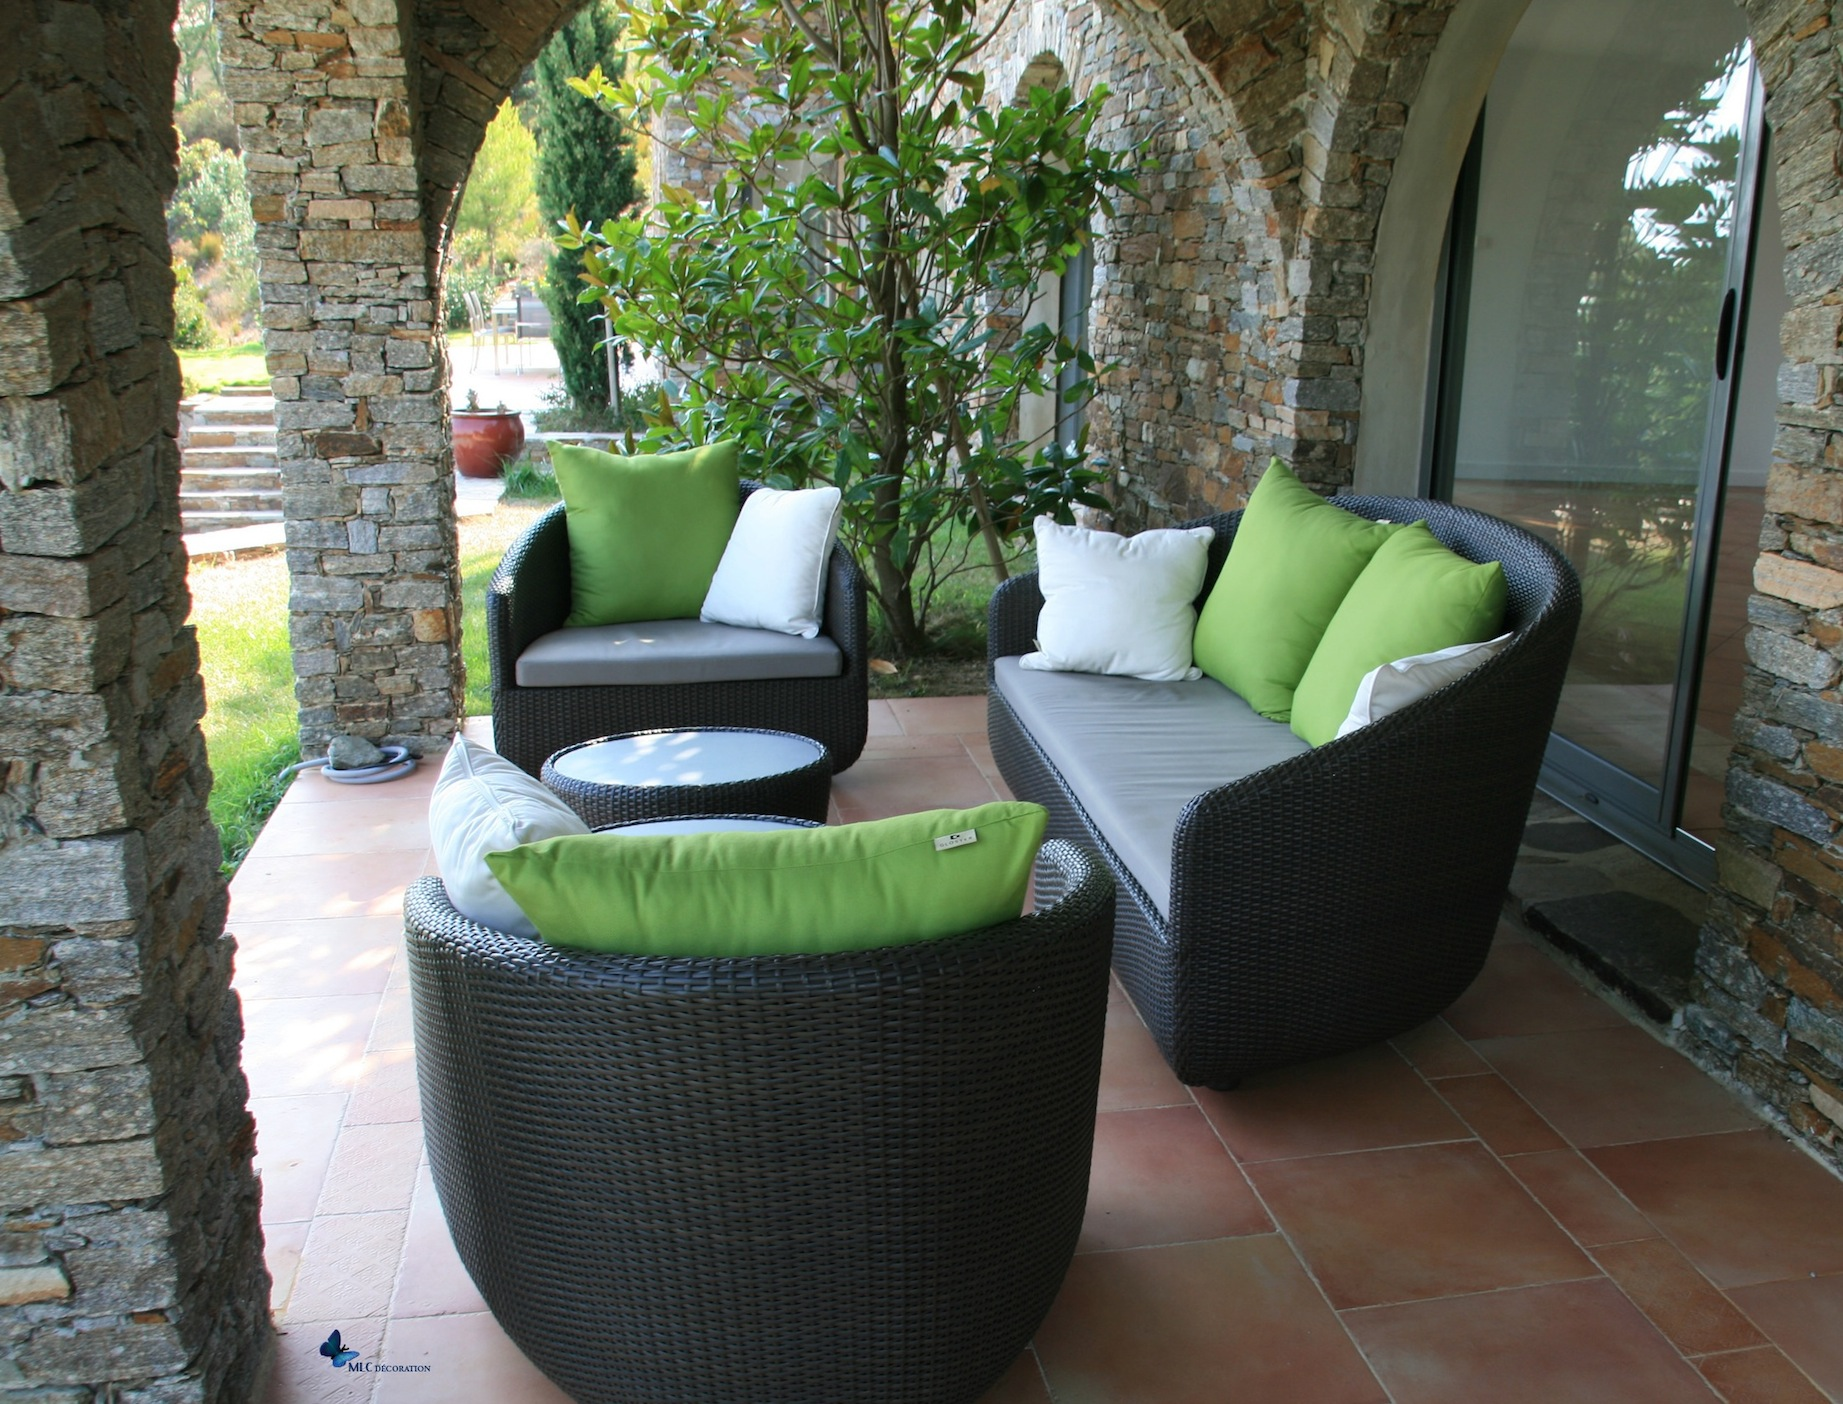 Canap ext rieur design archives le blog d co de mlc for Terrasse exterieur design